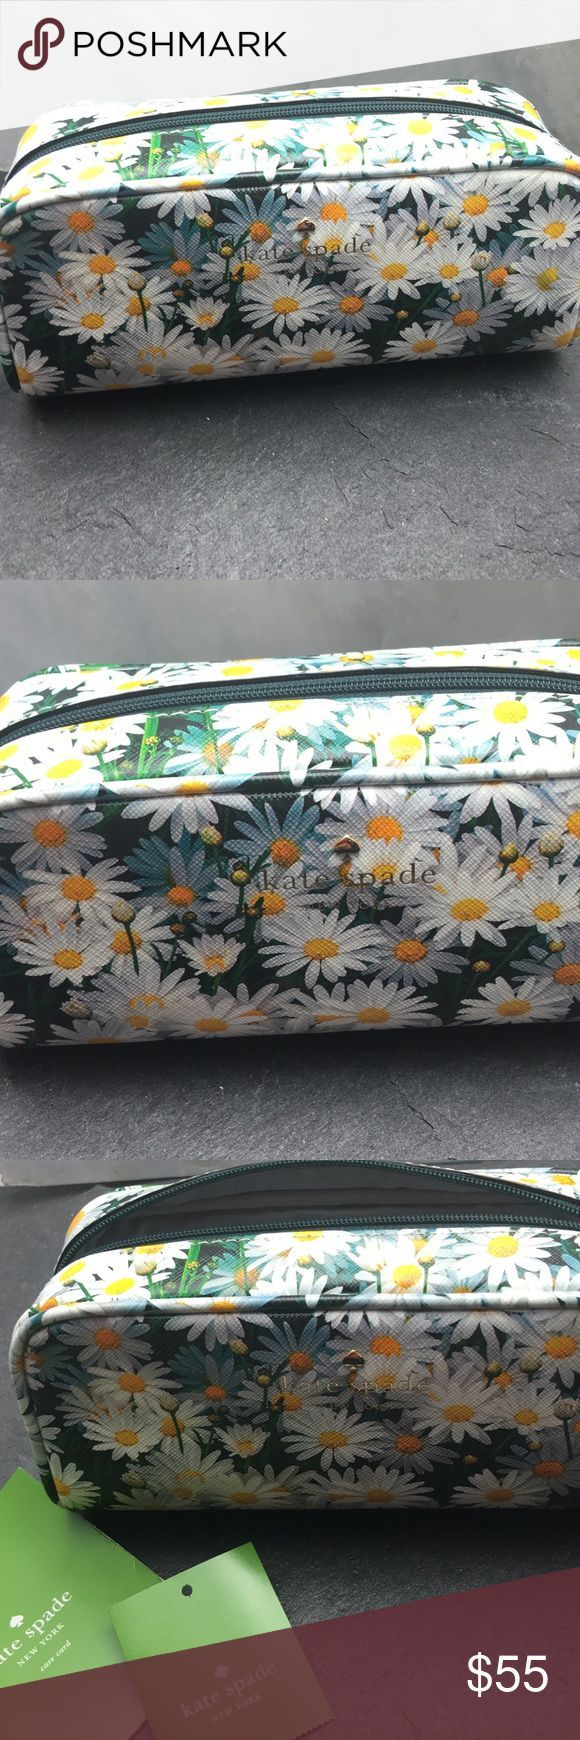 Kate Spade Daisy makeup bag Beautiful Kate Spade make up bag with saffiano leather and daisy print. kate spade Bags Cosmetic Bags & Cases - large handbags sale, purple purses for sale, purses for sale online *sponsored https://www.pinterest.com/purses_handbags/ https://www.pinterest.com/explore/hand-bag/ https://www.pinterest.com/purses_handbags/designer-handbags/ http://www.newchic.com/womens-handbags-3609/